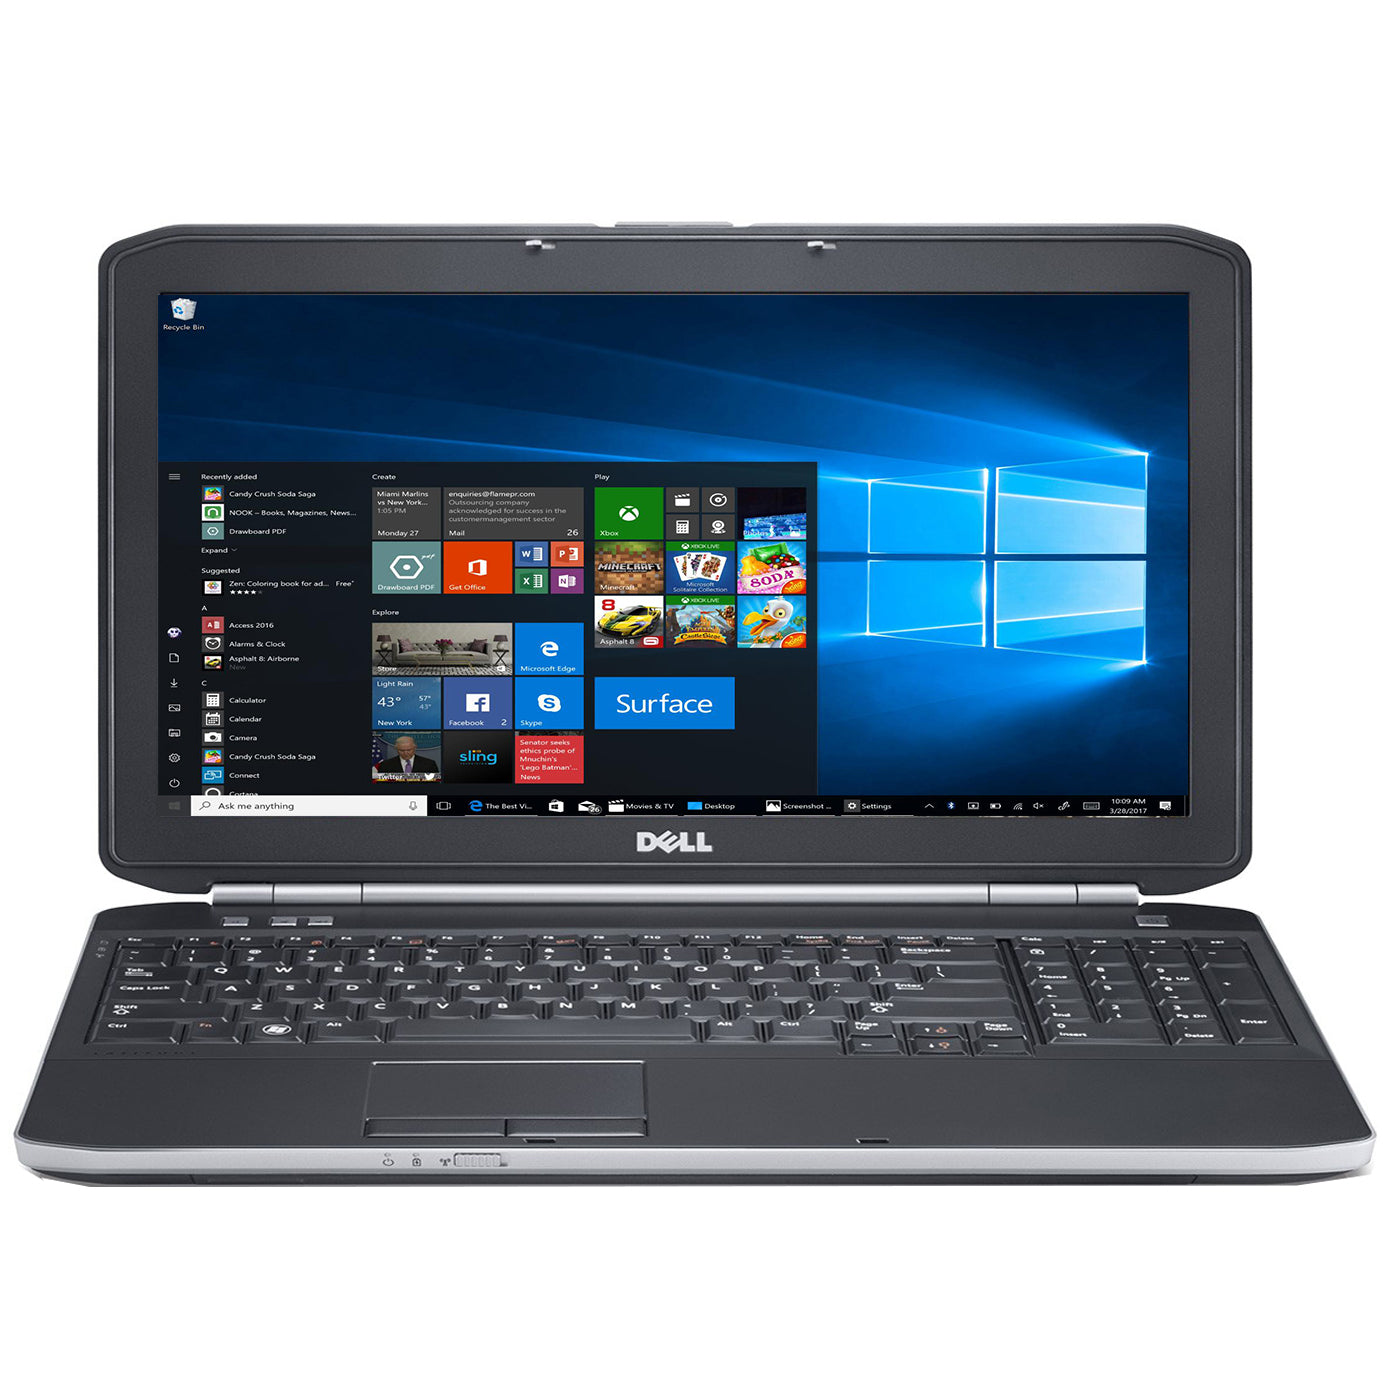 "Dell Latitude e5530 15.6"" Laptop, Intel Core i5, 8GB RAM, 320GB HDD, Win10 Pro. Refurbished"